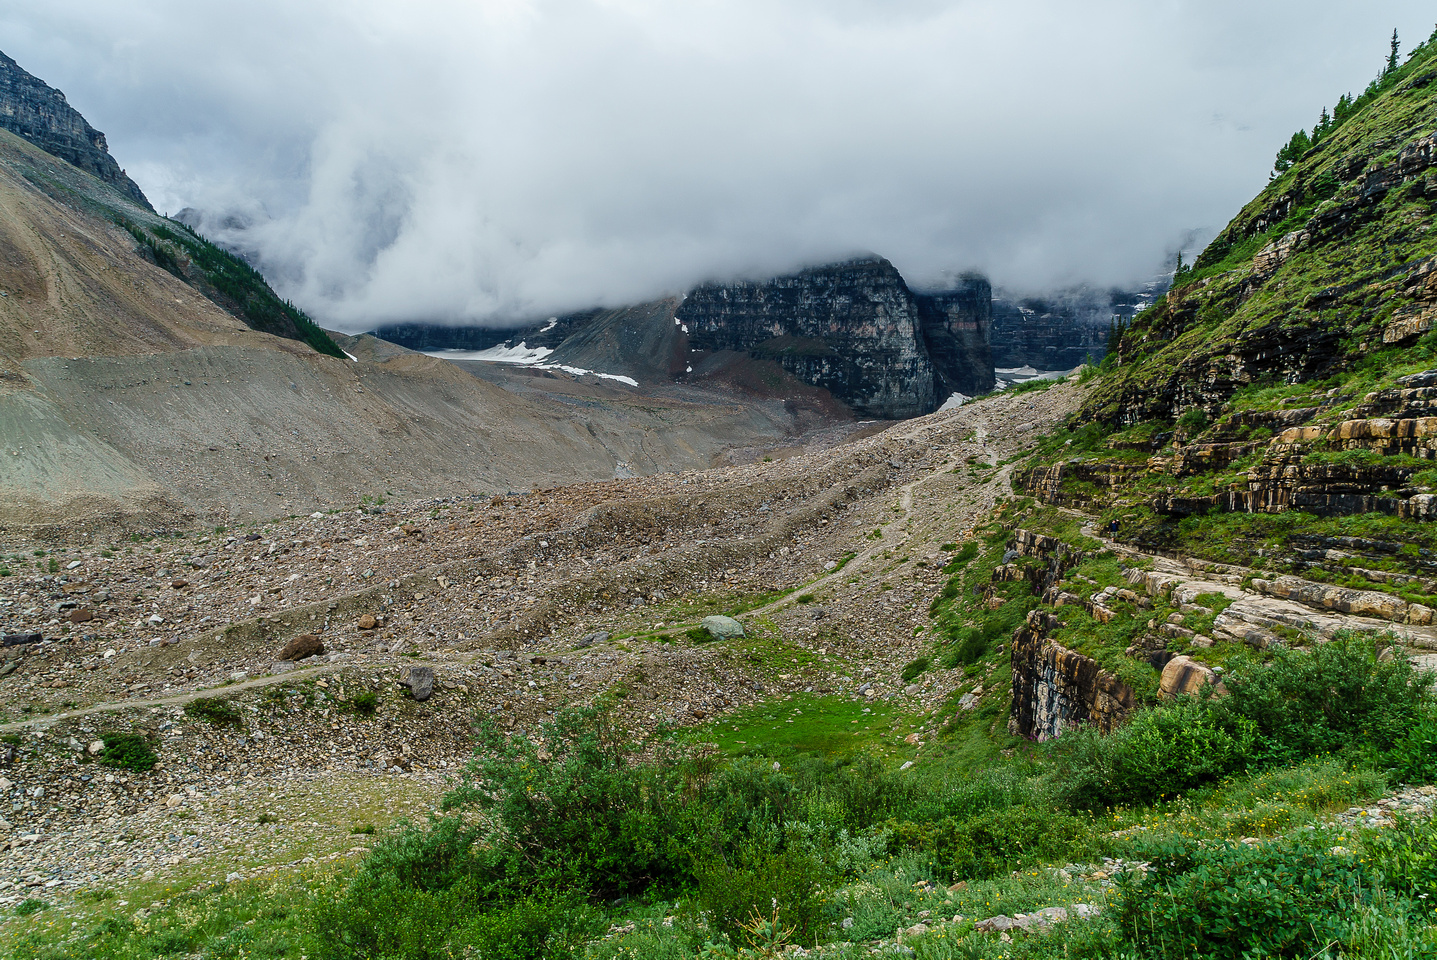 Low cloud hides the big peaks as we approach the cool ledge traverse on the main trail to the Plain of Six Glaciers tea house.